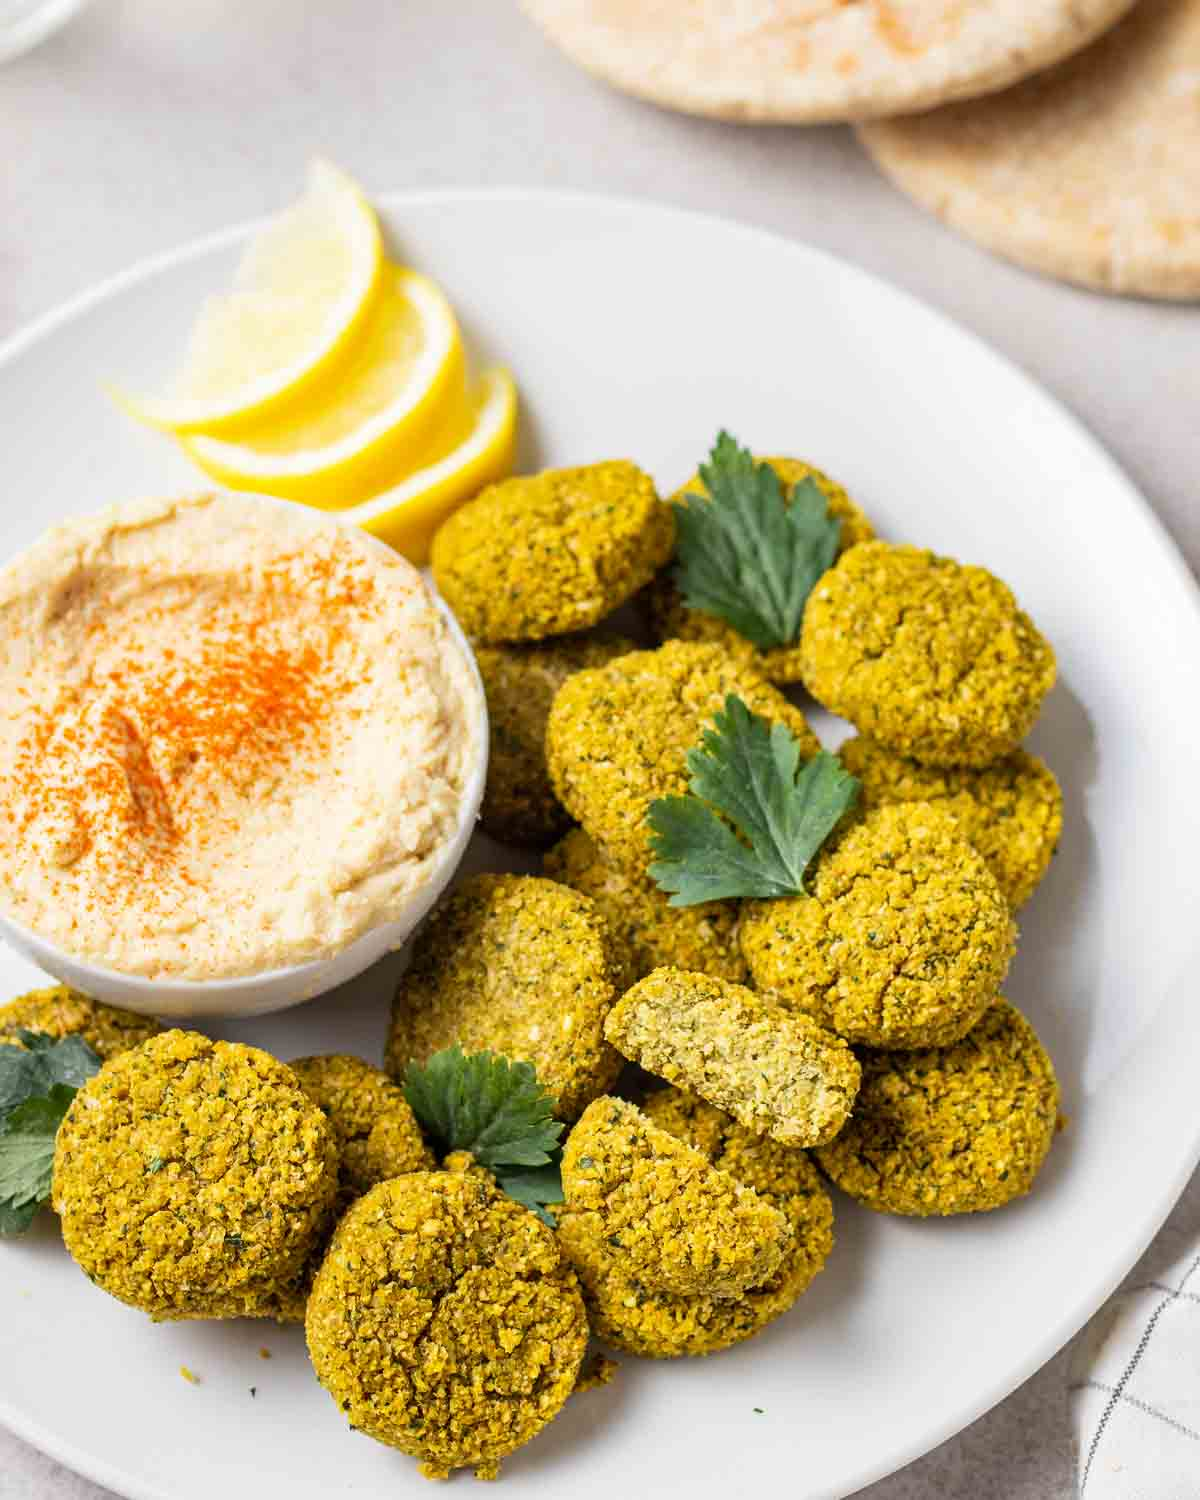 Falafels served with a bowl of hummus on a white plate. There are pitas in the background.